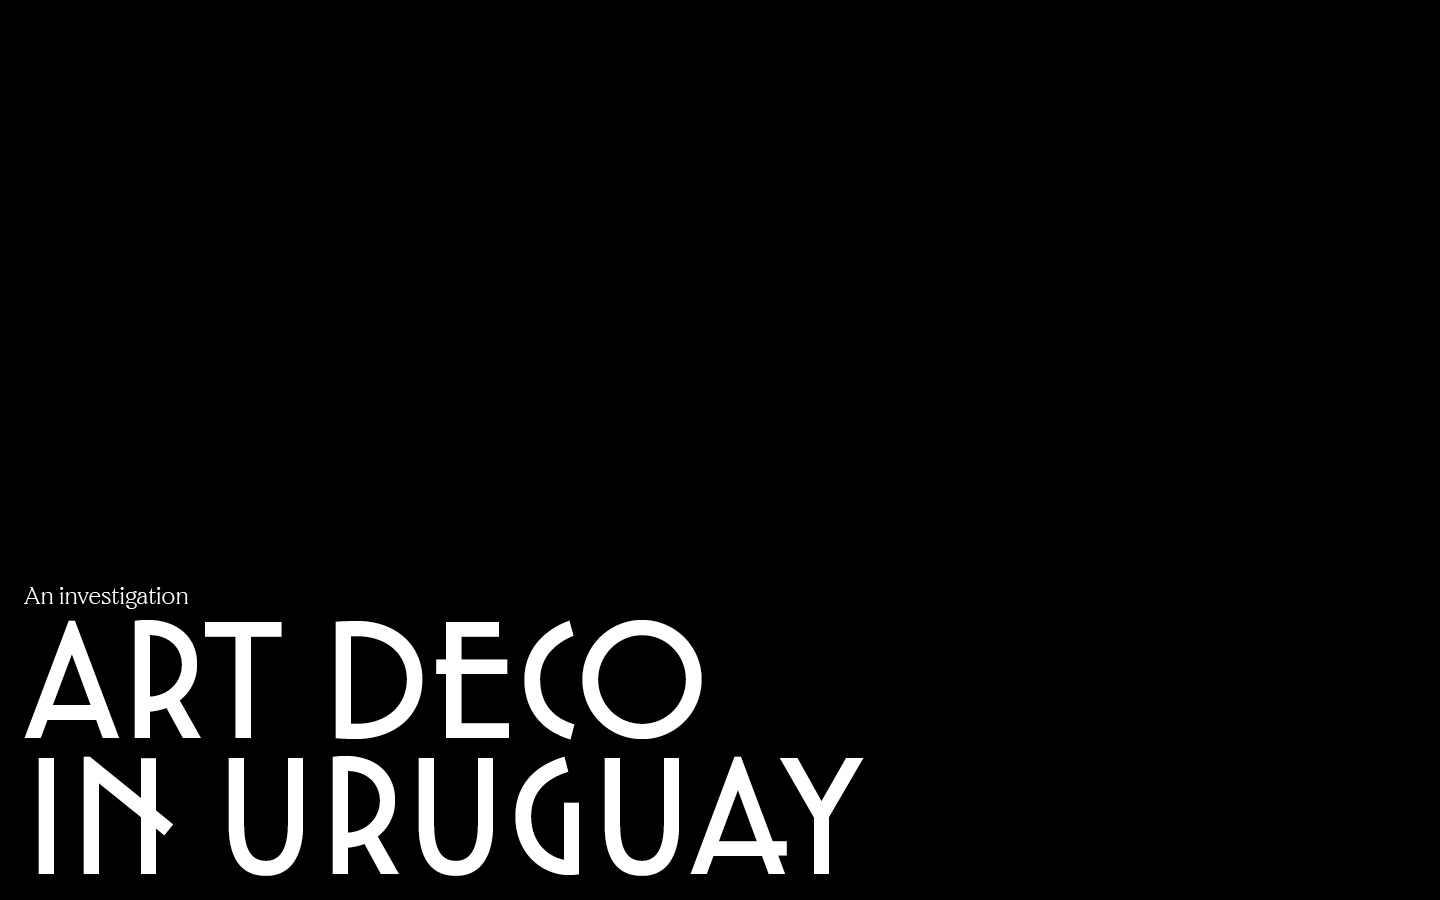 Thumbnail for The Daily Heller: Uruguay, Deco Style